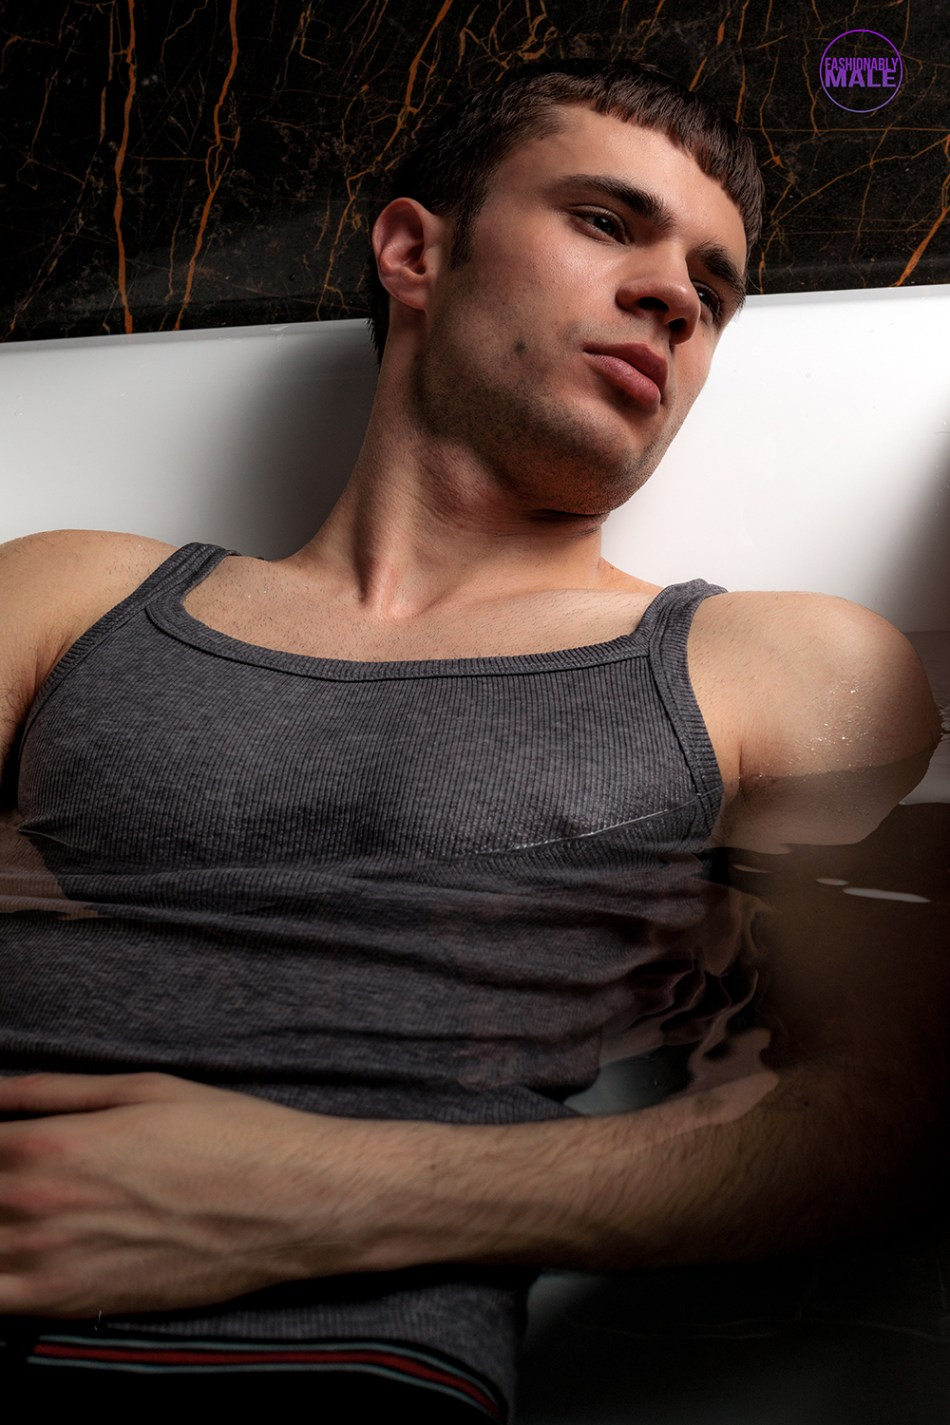 Snap a New Gen of Models: Adrian by Andrew M.